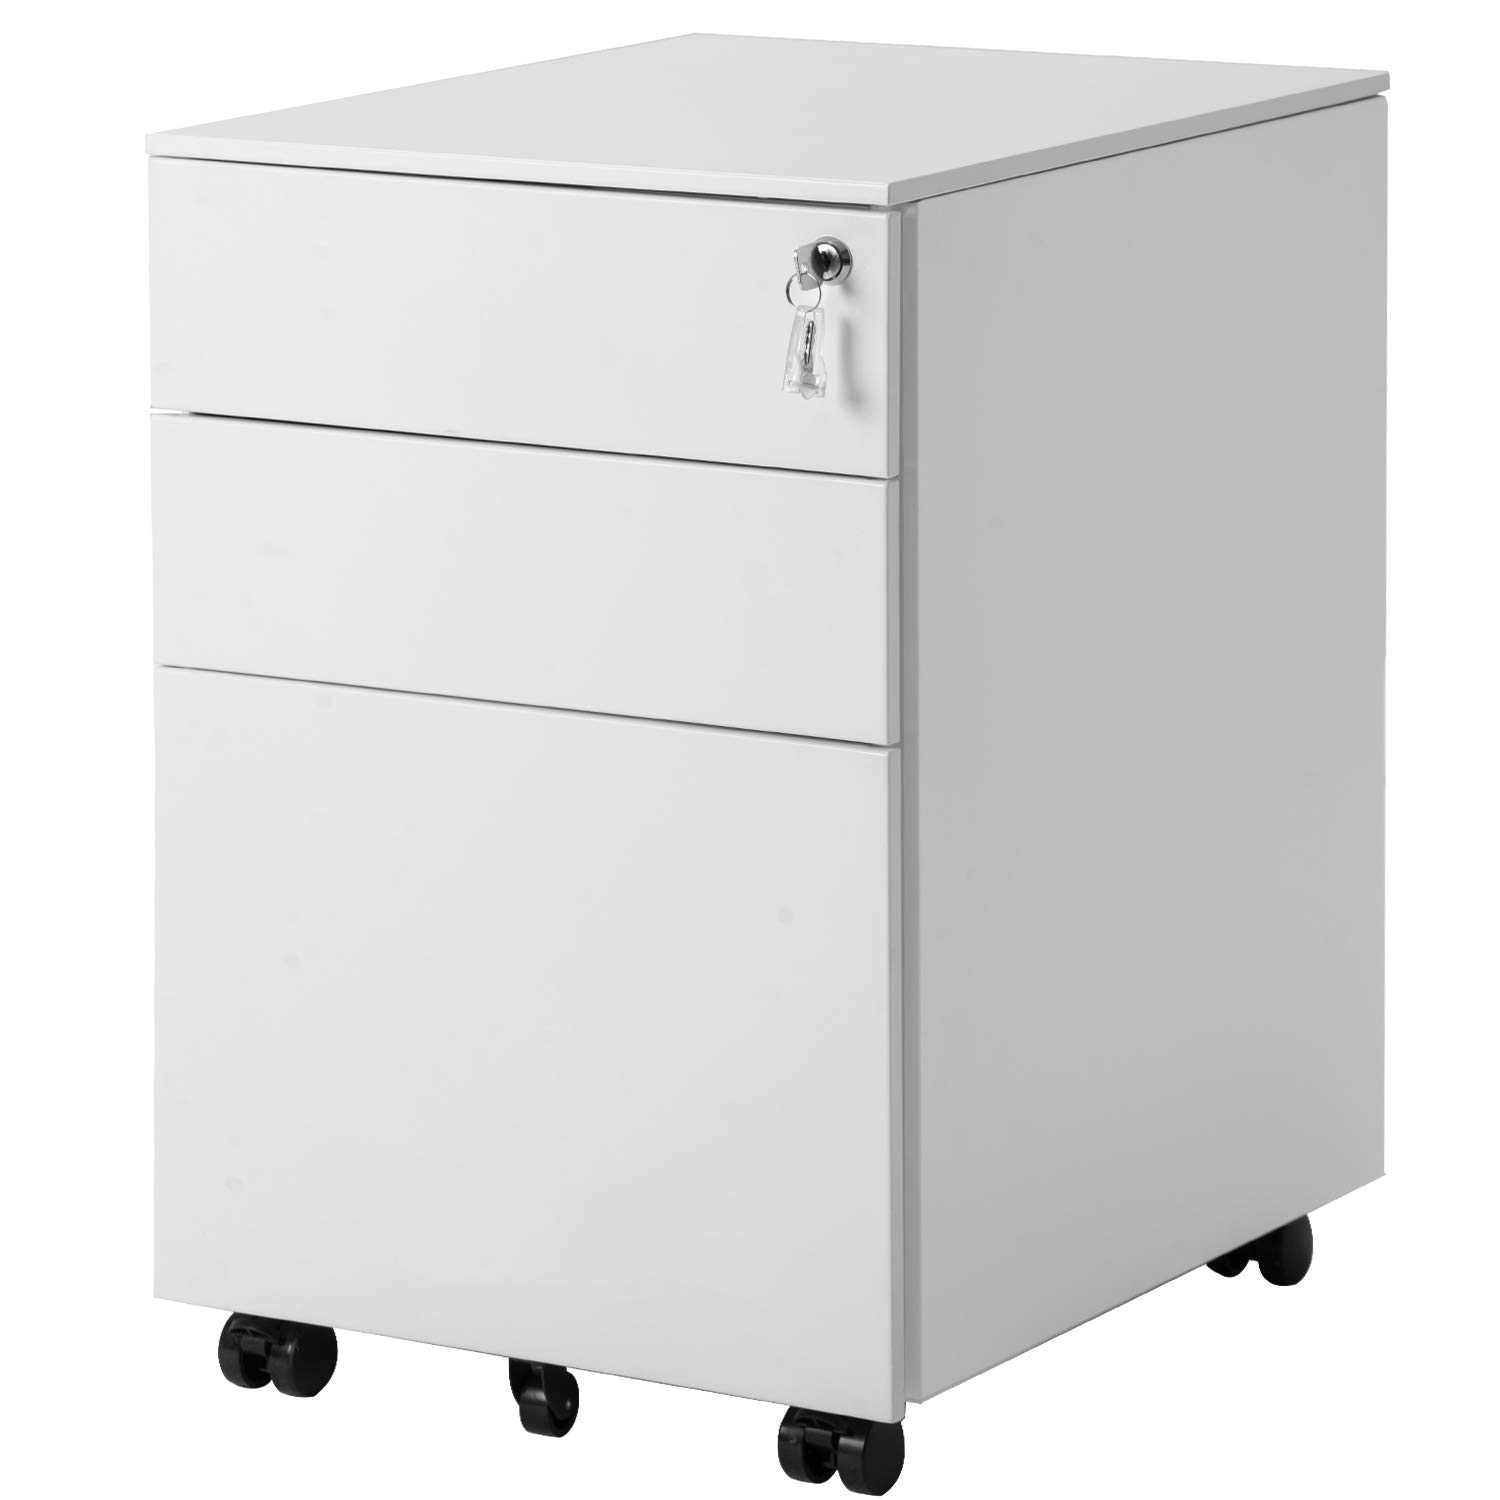 ModernLuxe 3 Drawer Metal Mobile File Cabinet with Lock Metal Filing Cabinet Legal/Letter/A4/F4 Size Fully Assembled Except Casters (White) by ModernLuxe